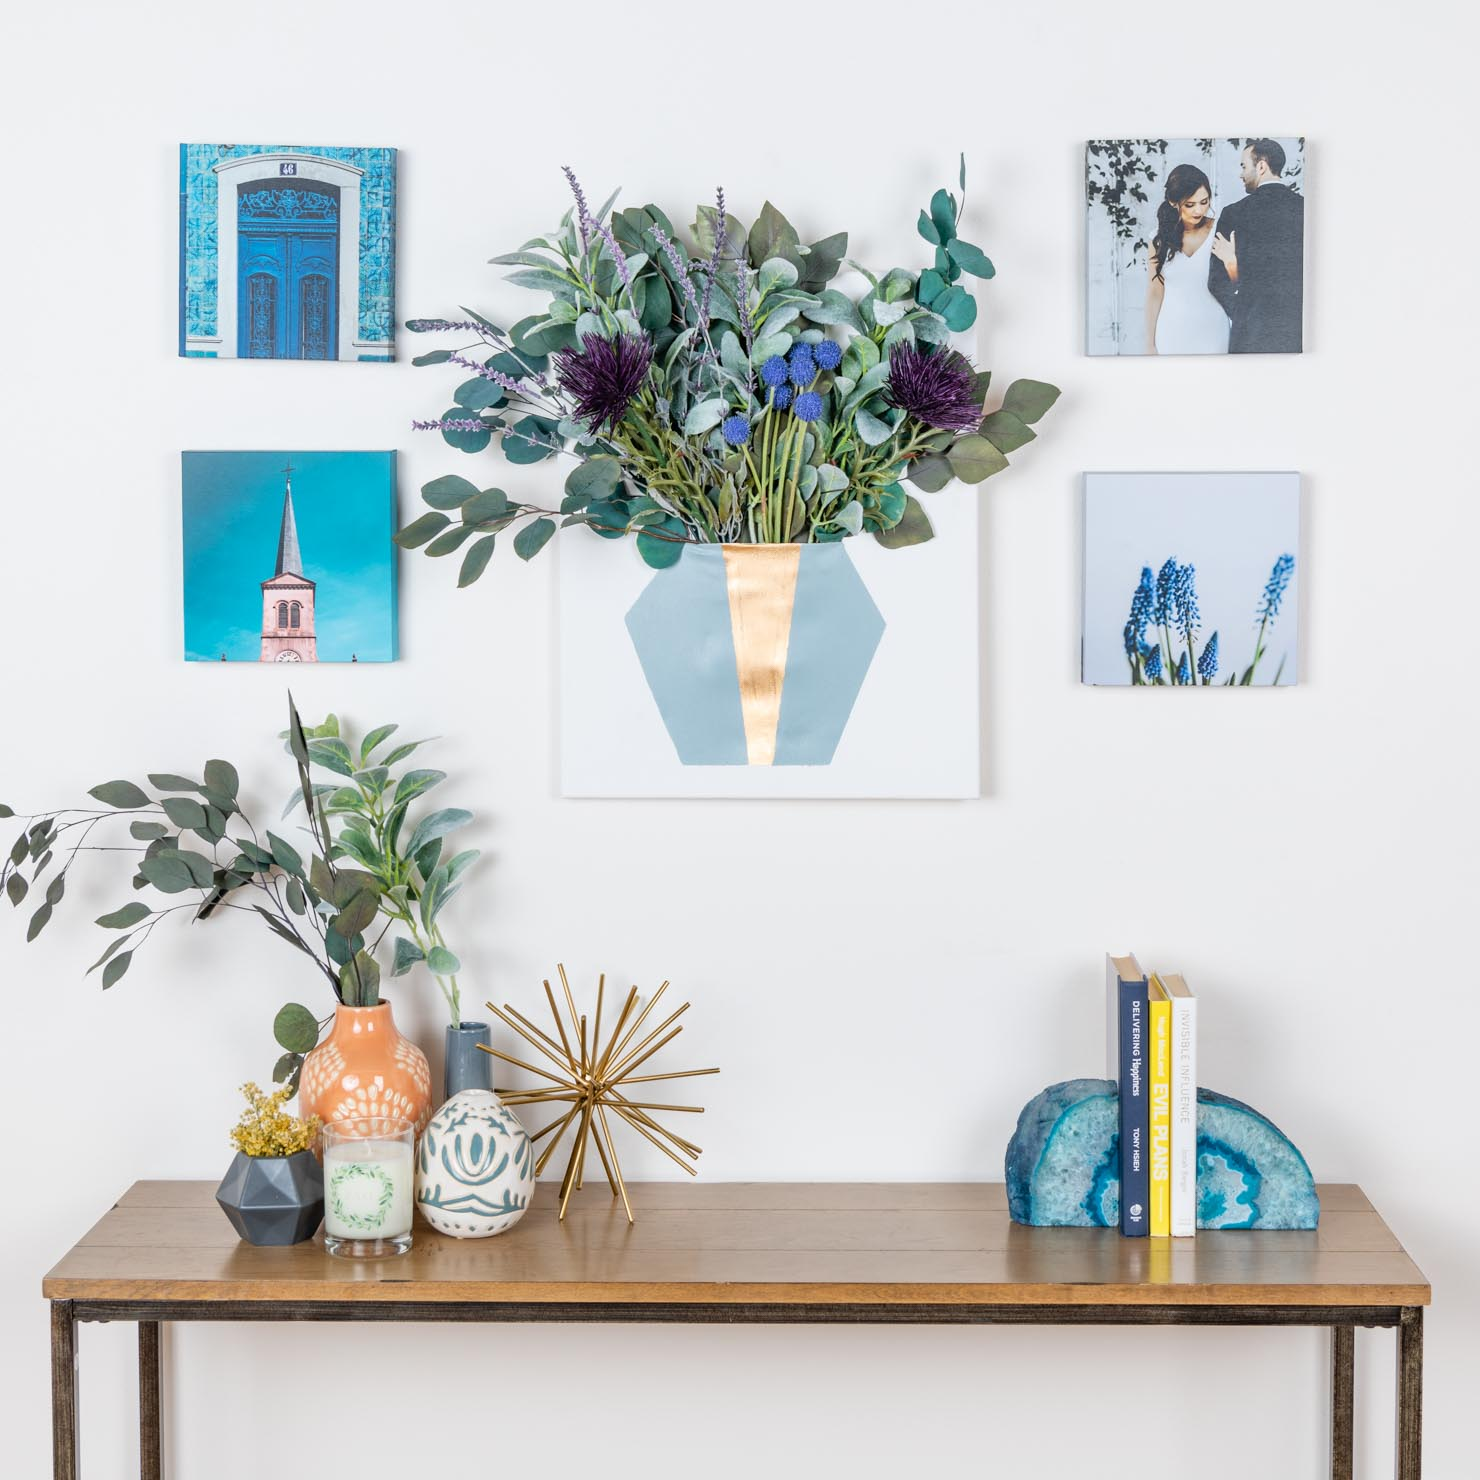 How to Decorate an Empty Wall